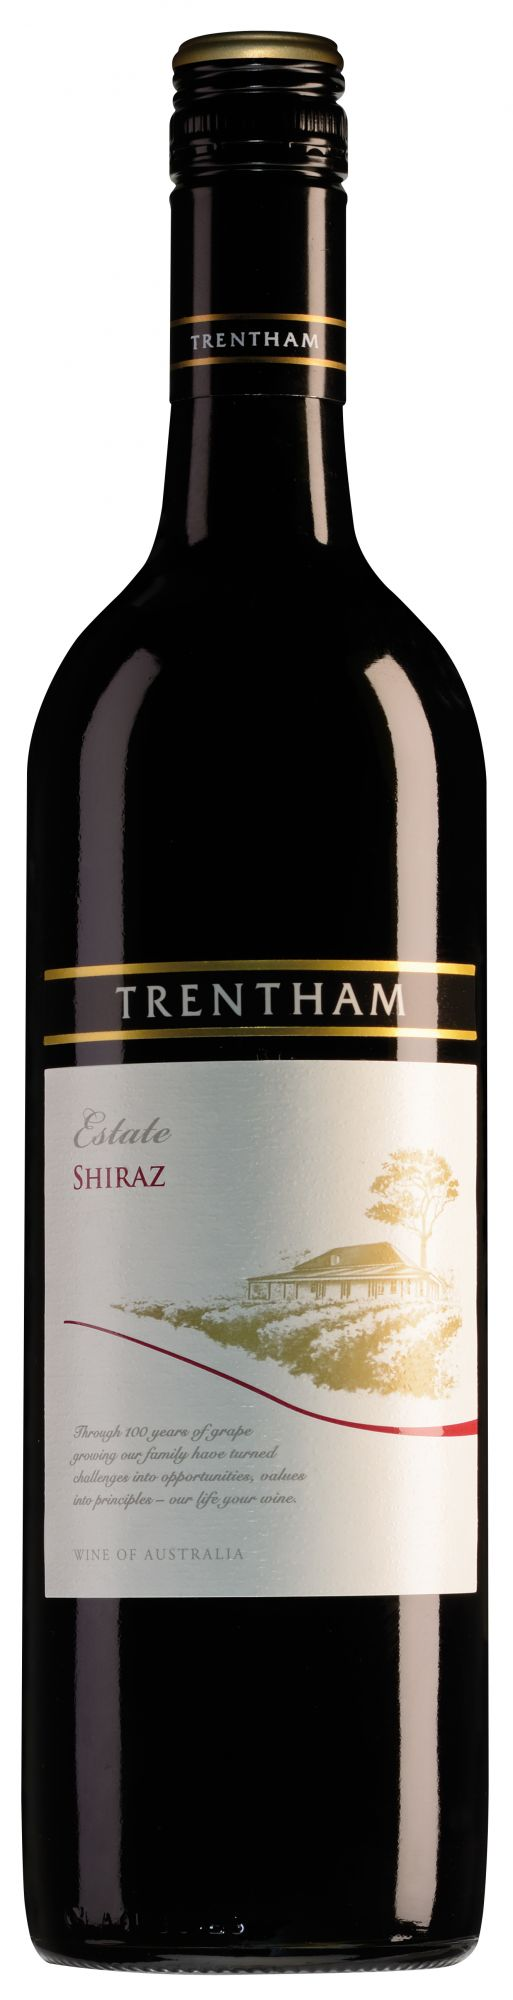 Trentham Estate South Australia Shiraz